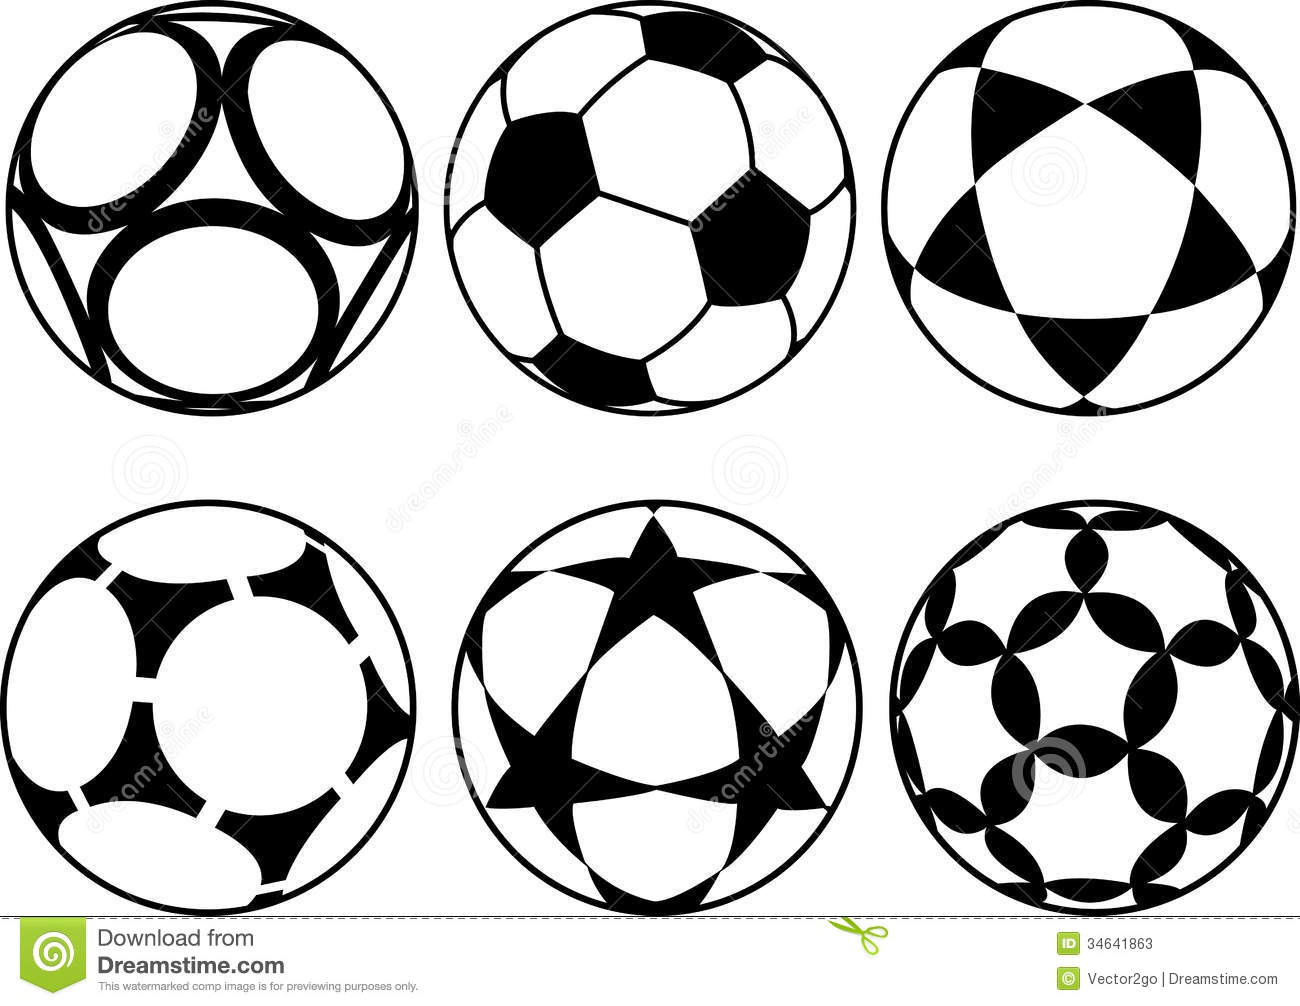 Soccer Ball Clip Art Black And White